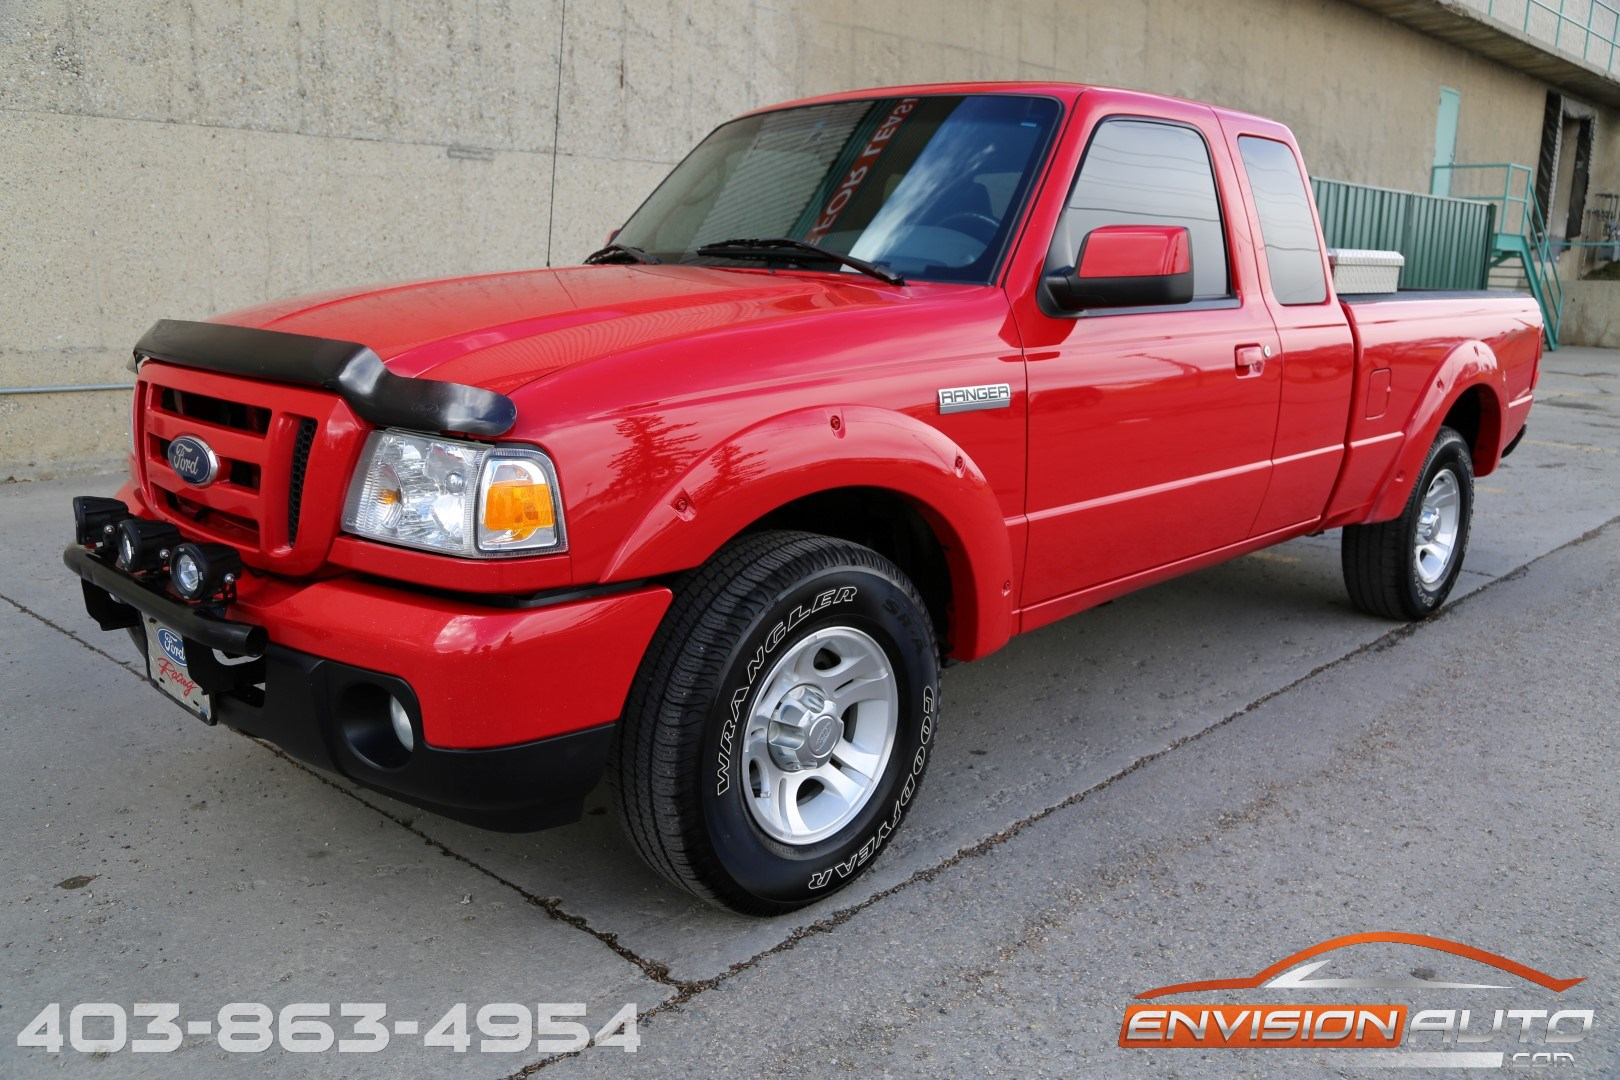 2011 ford ranger super cab sport 1 local owner envision auto. Black Bedroom Furniture Sets. Home Design Ideas